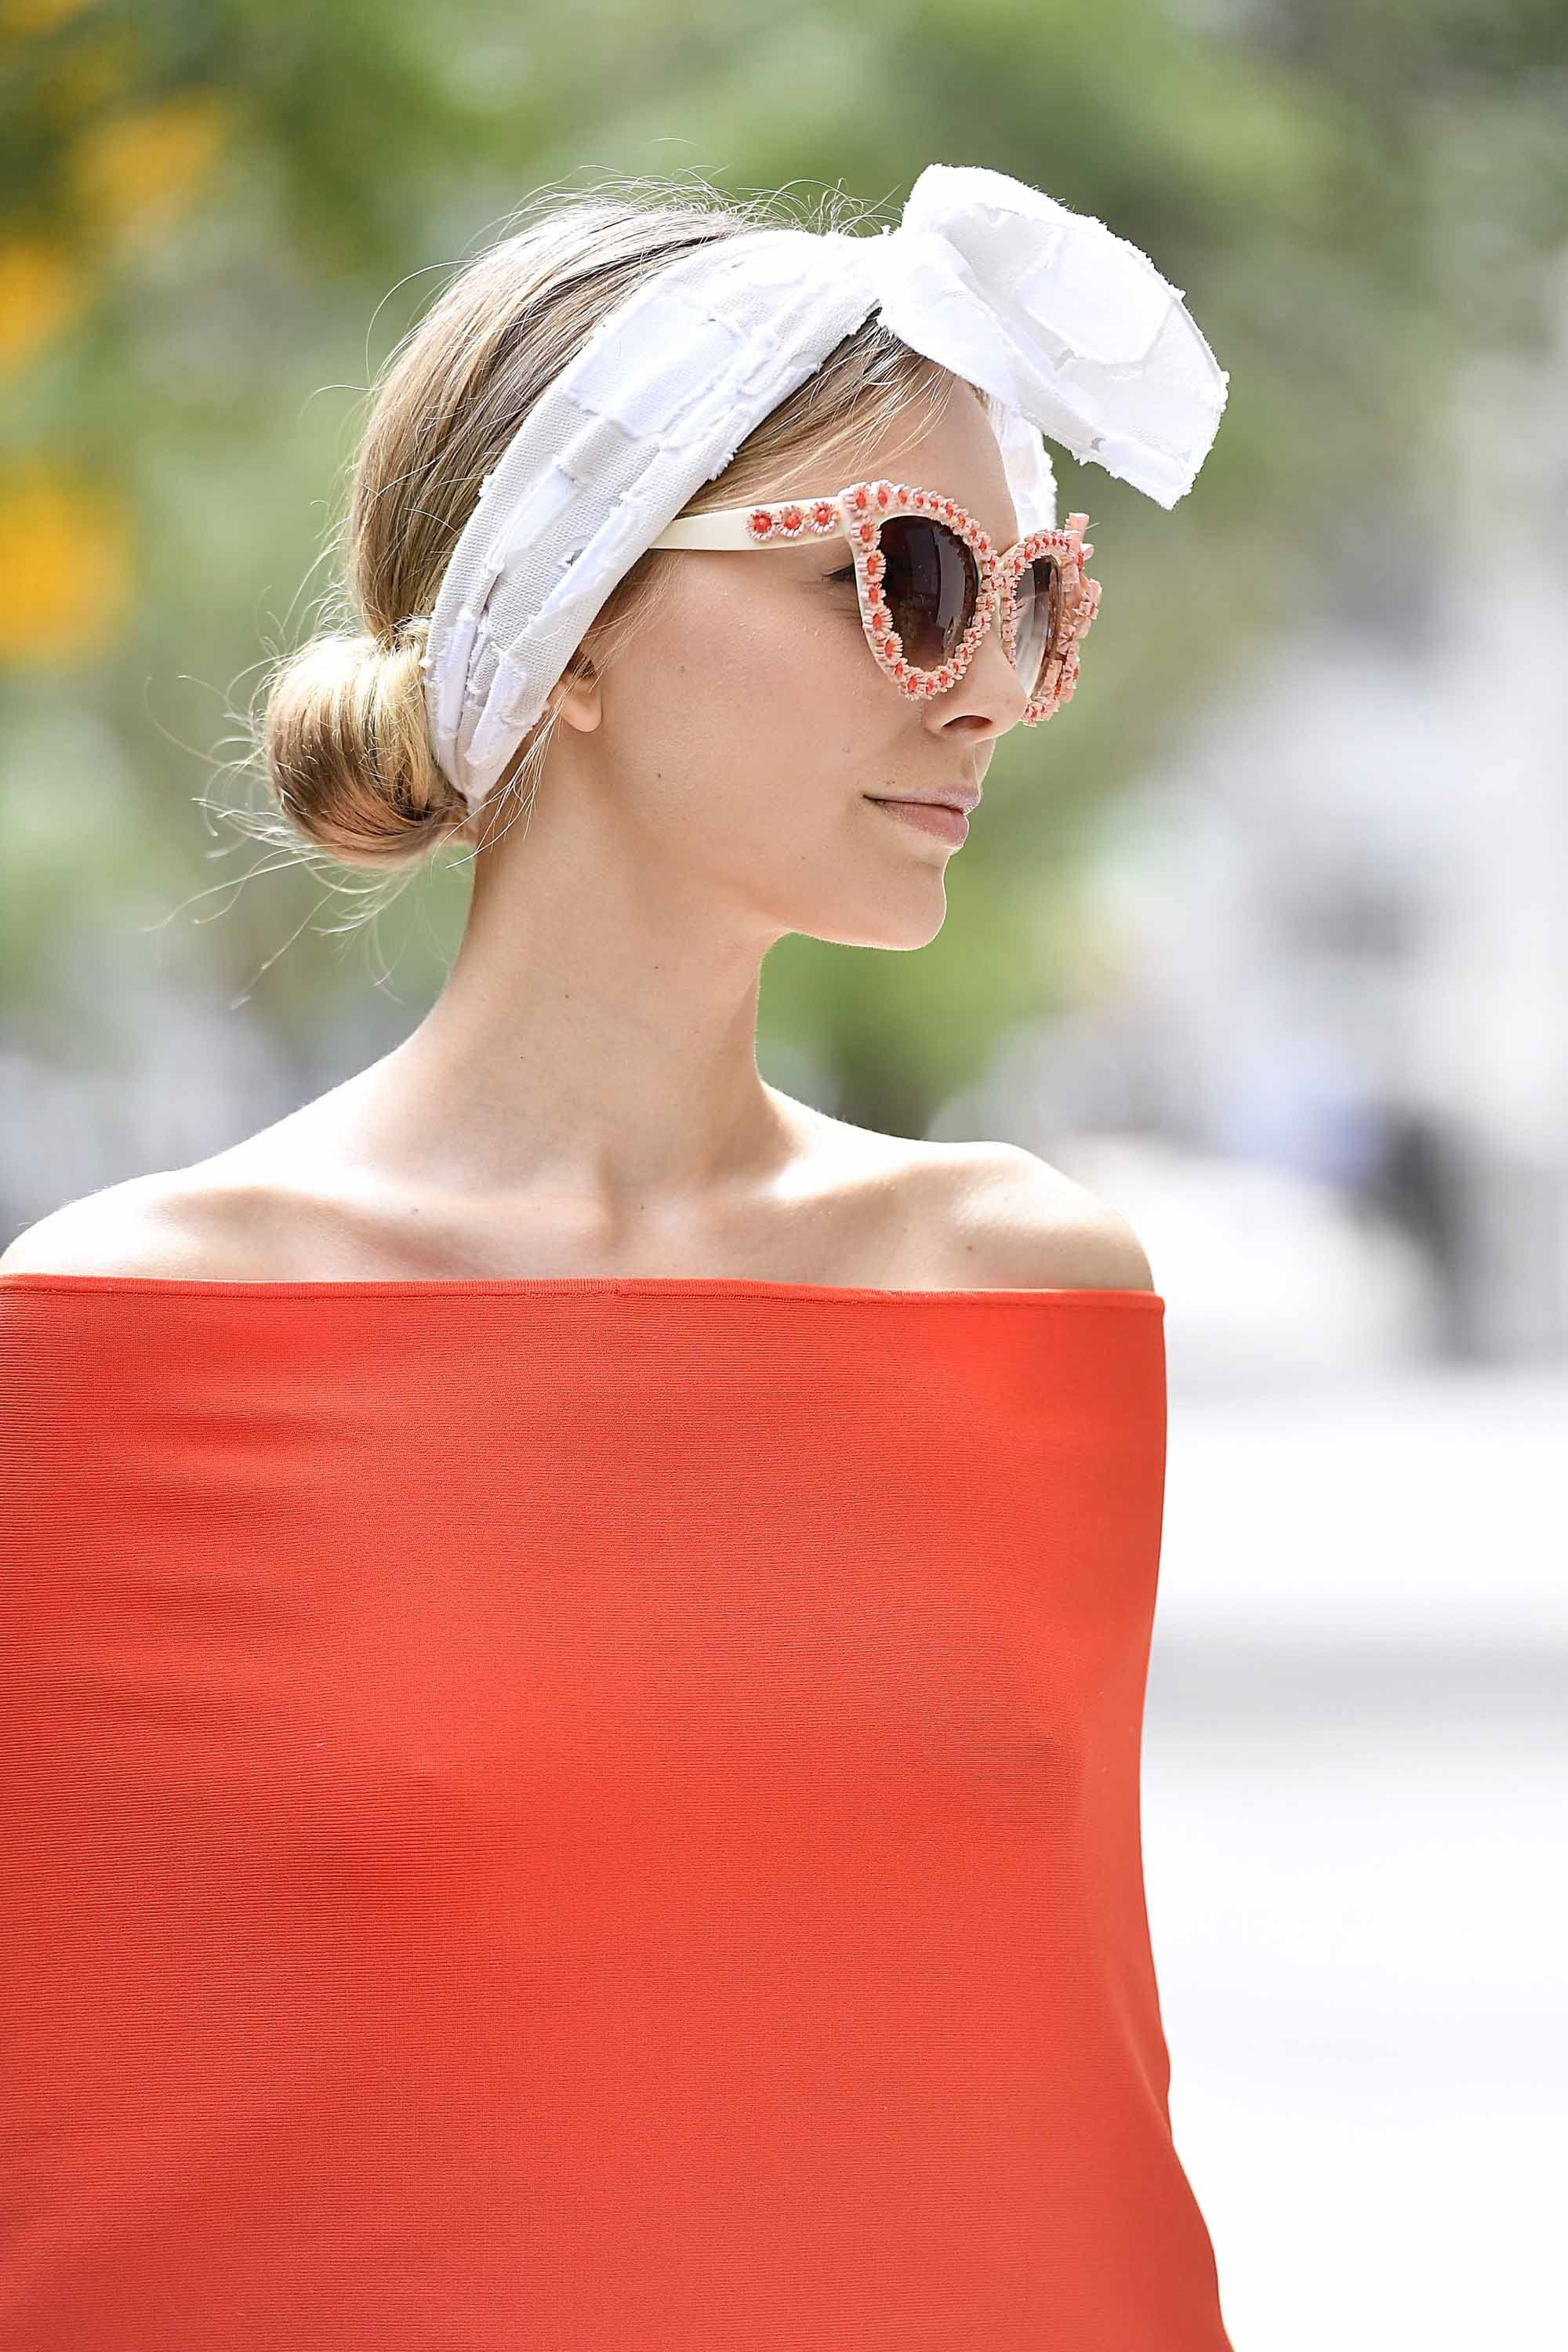 cute spring break hair looks: low chignon and headband.